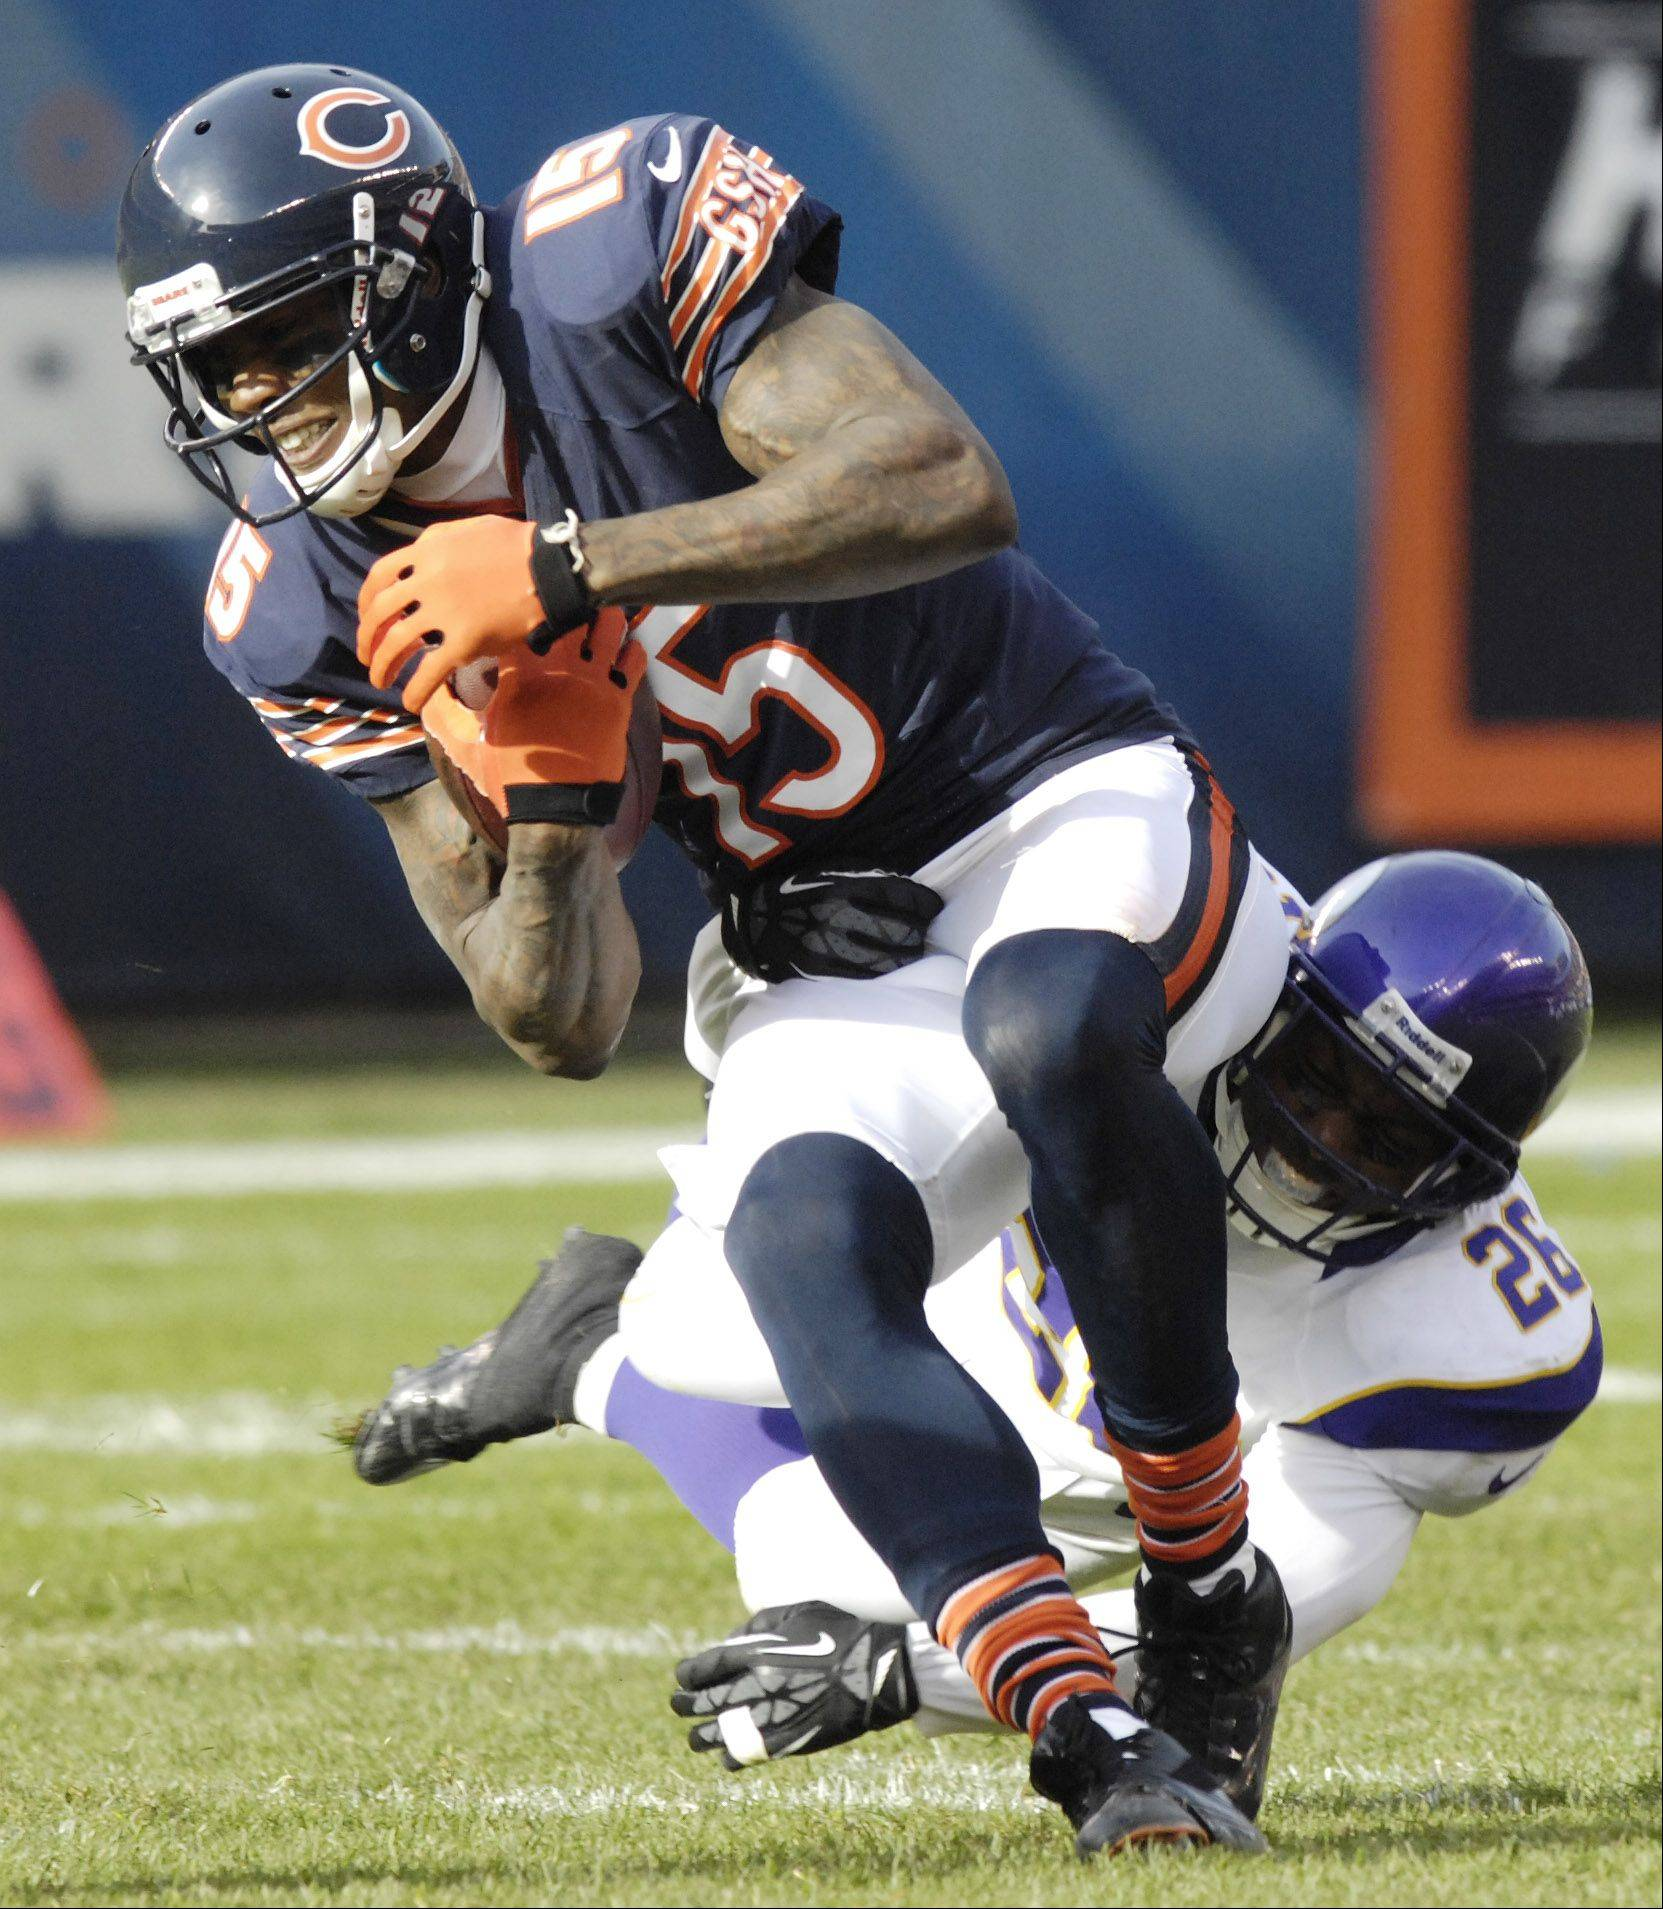 Chicago Bears wide receiver Brandon Marshall gets tackled by Minnesota Vikings cornerback Antoine Winfield at Soldier Field Sunday.